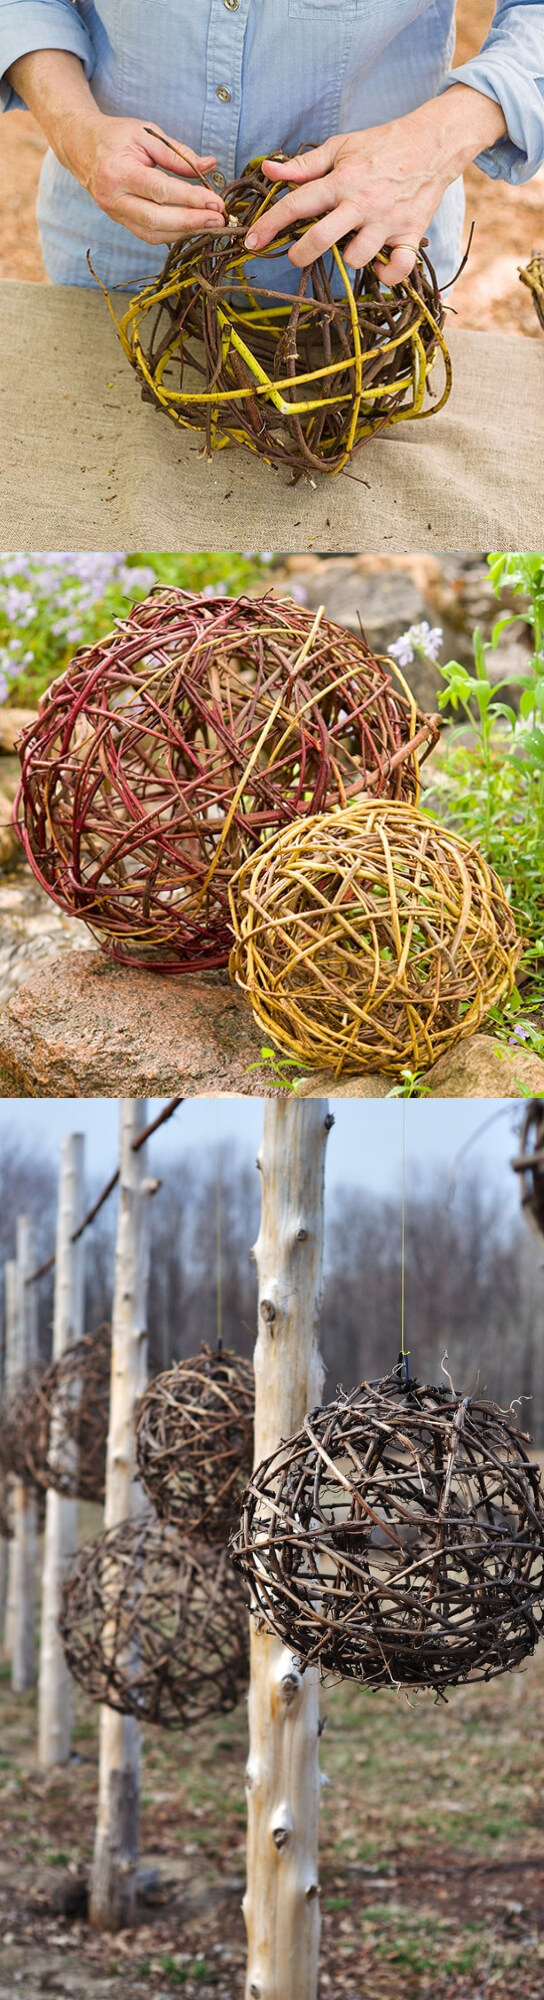 Grapevine Balls | Best DIY Garden Globe Ideas & Designs